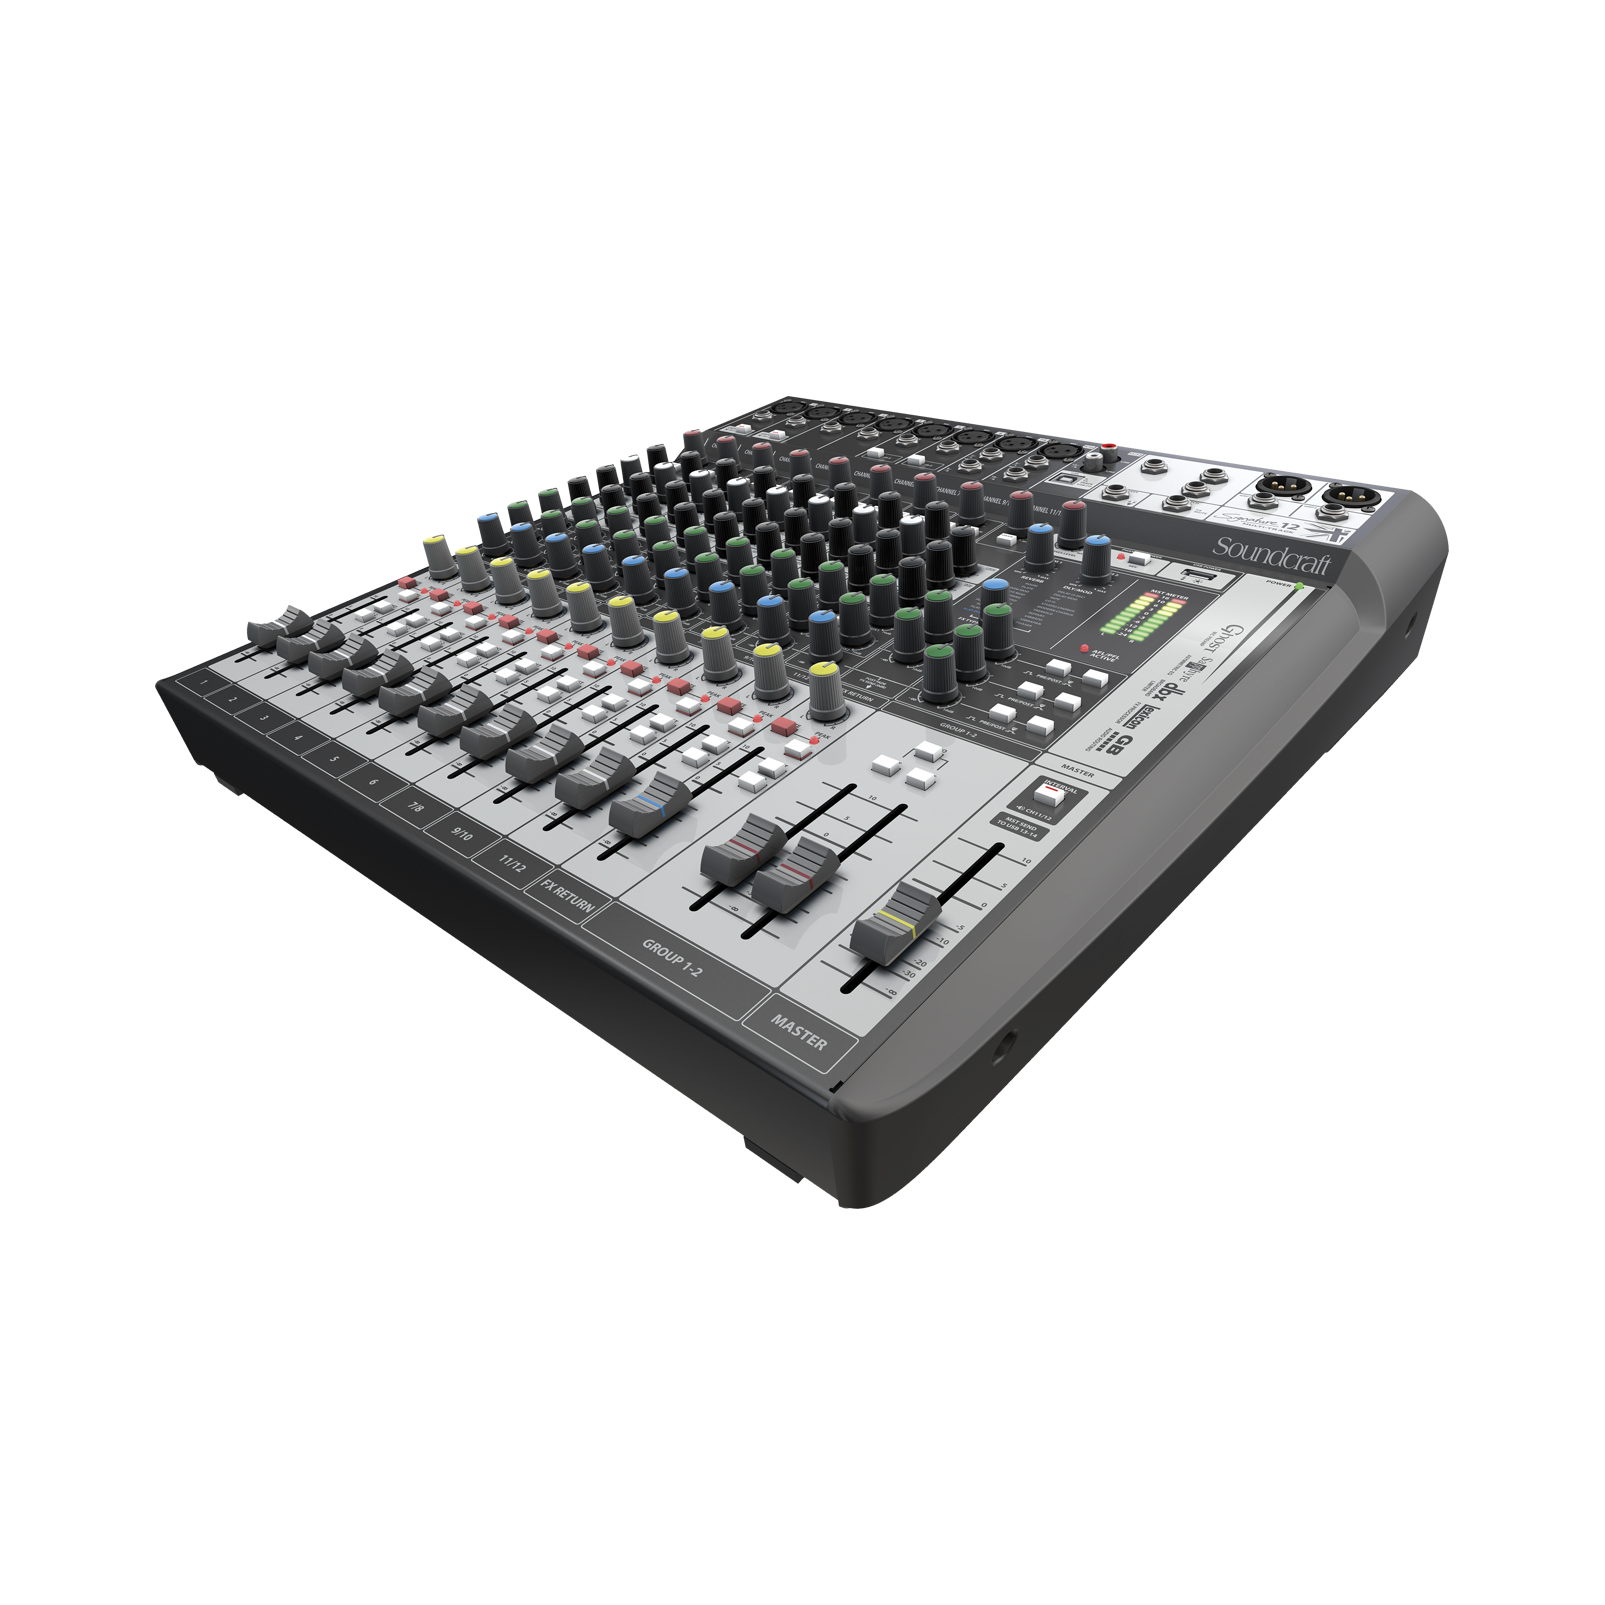 Signature 12 MTK - Black - 12-input analogue mixer with onboard effects and multi-track USB recording and playback - Detailshot 1